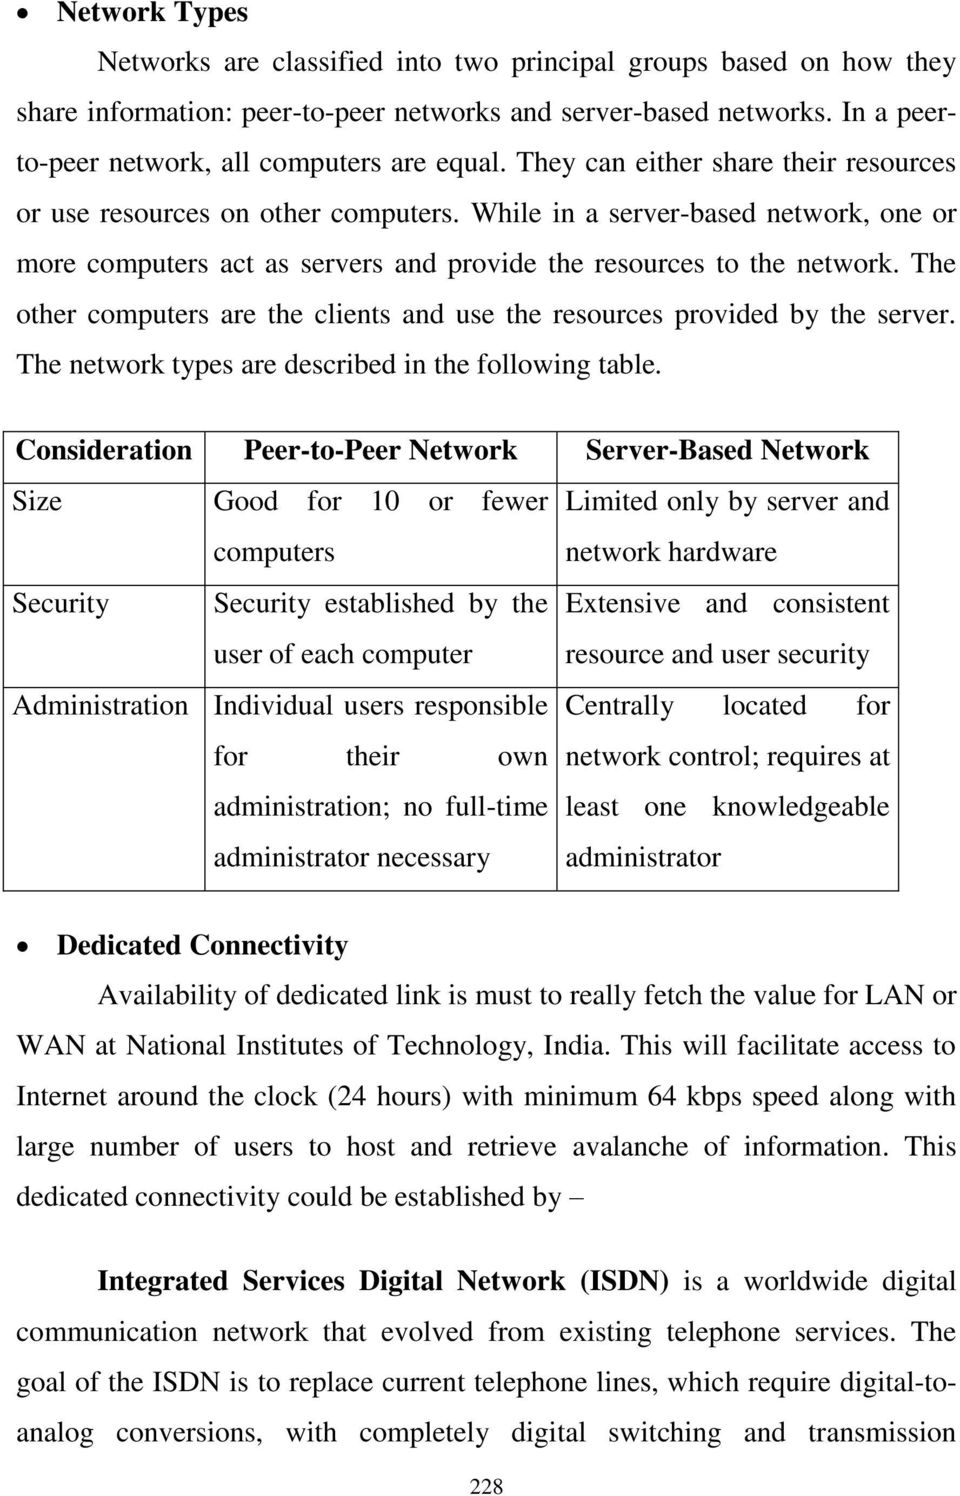 The other computers are the clients and use the resources provided by the server. The network types are described in the following table.